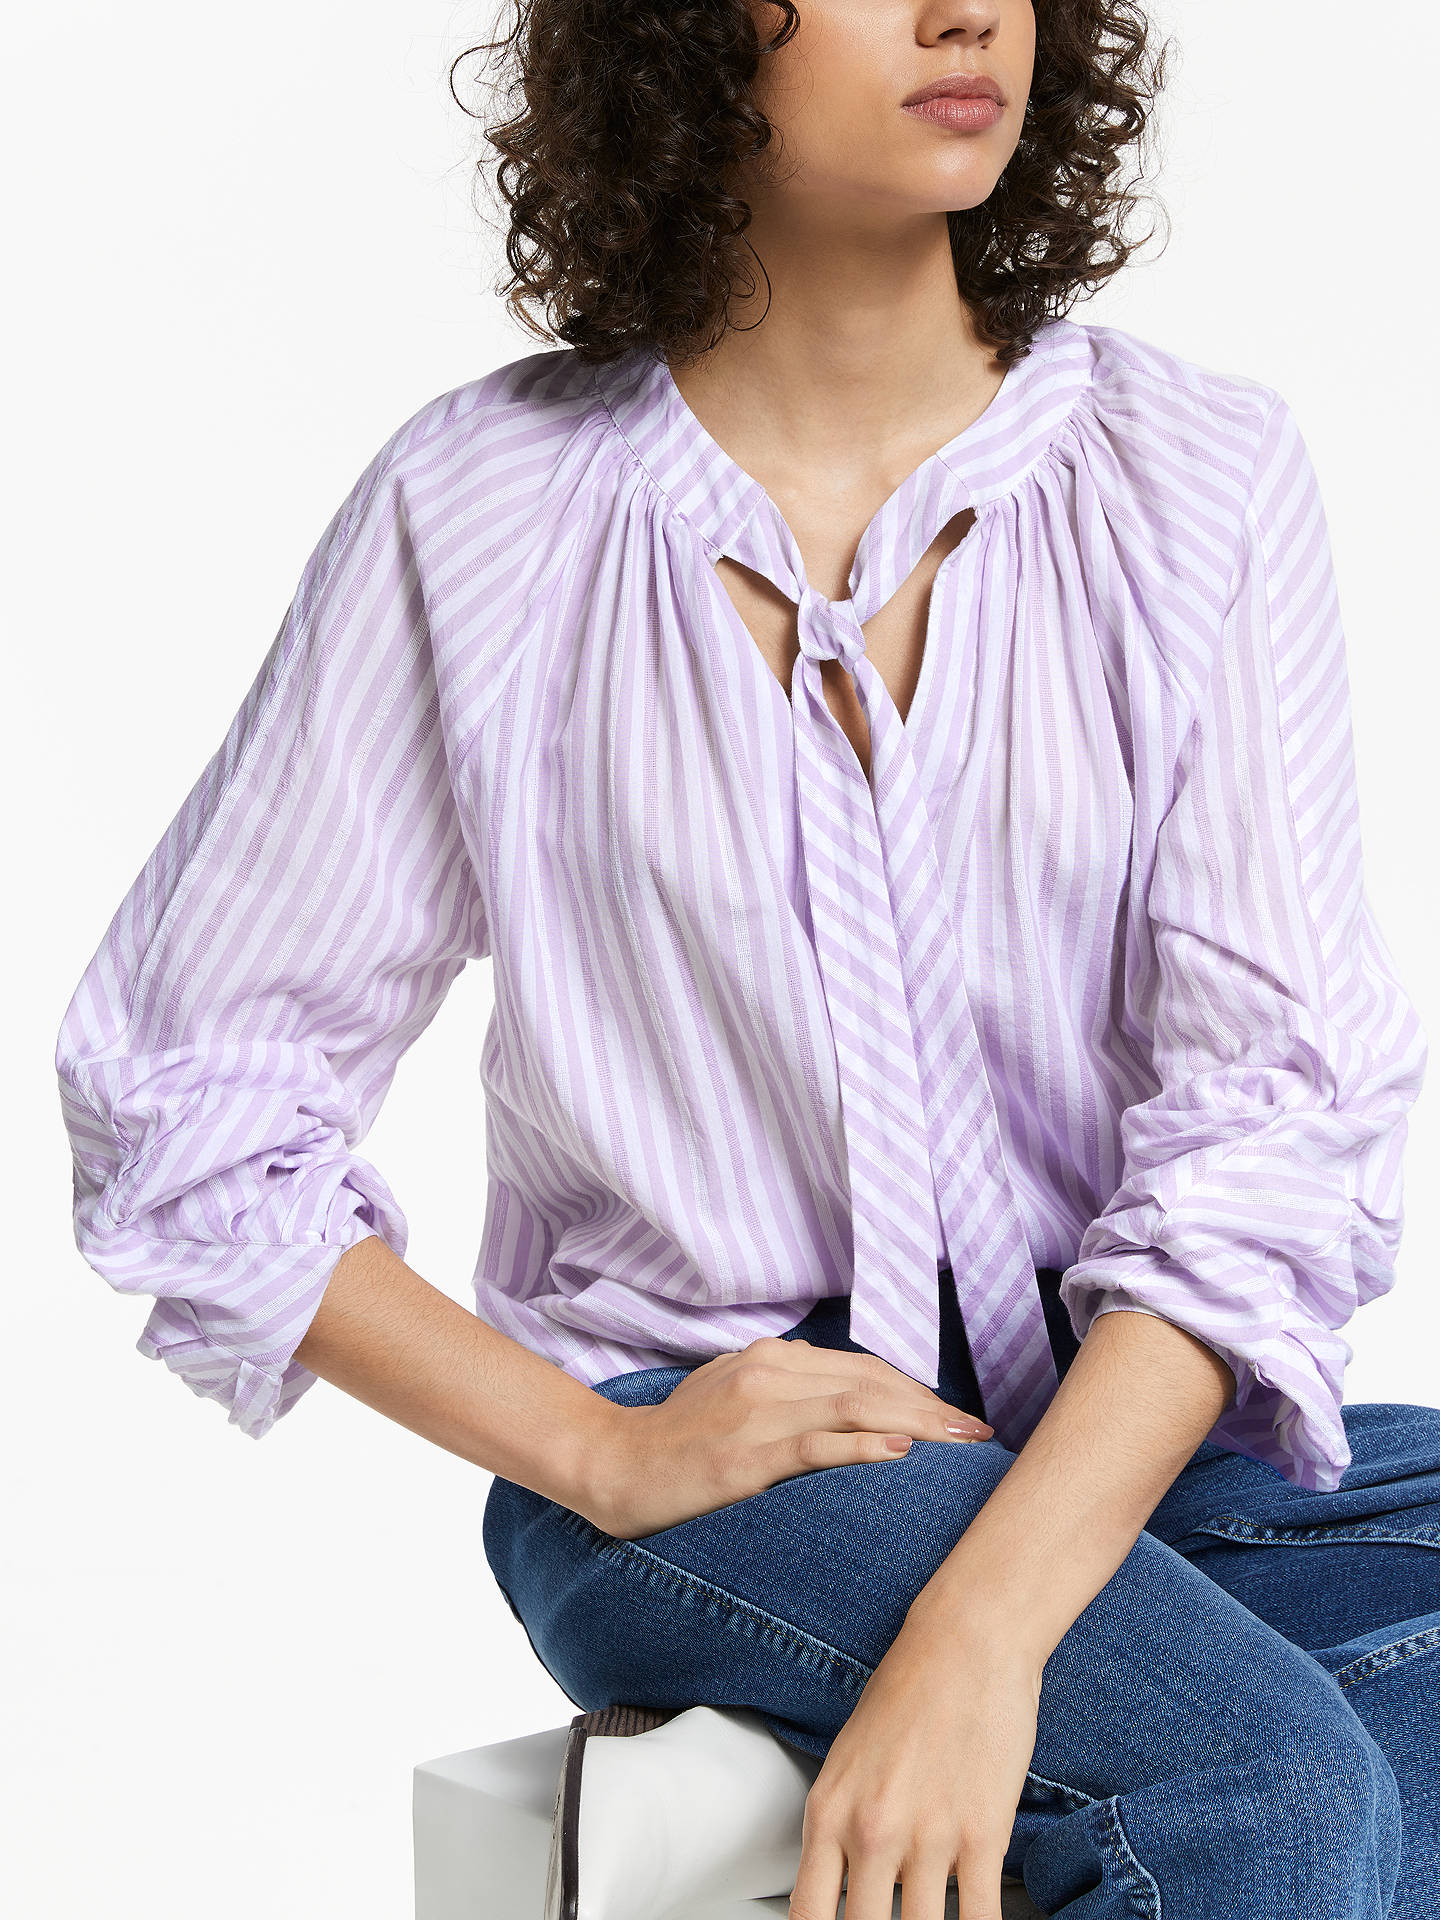 BuyAND/OR Leila Cotton Top, Soft Lilac/Ivory, 14 Online at johnlewis.com